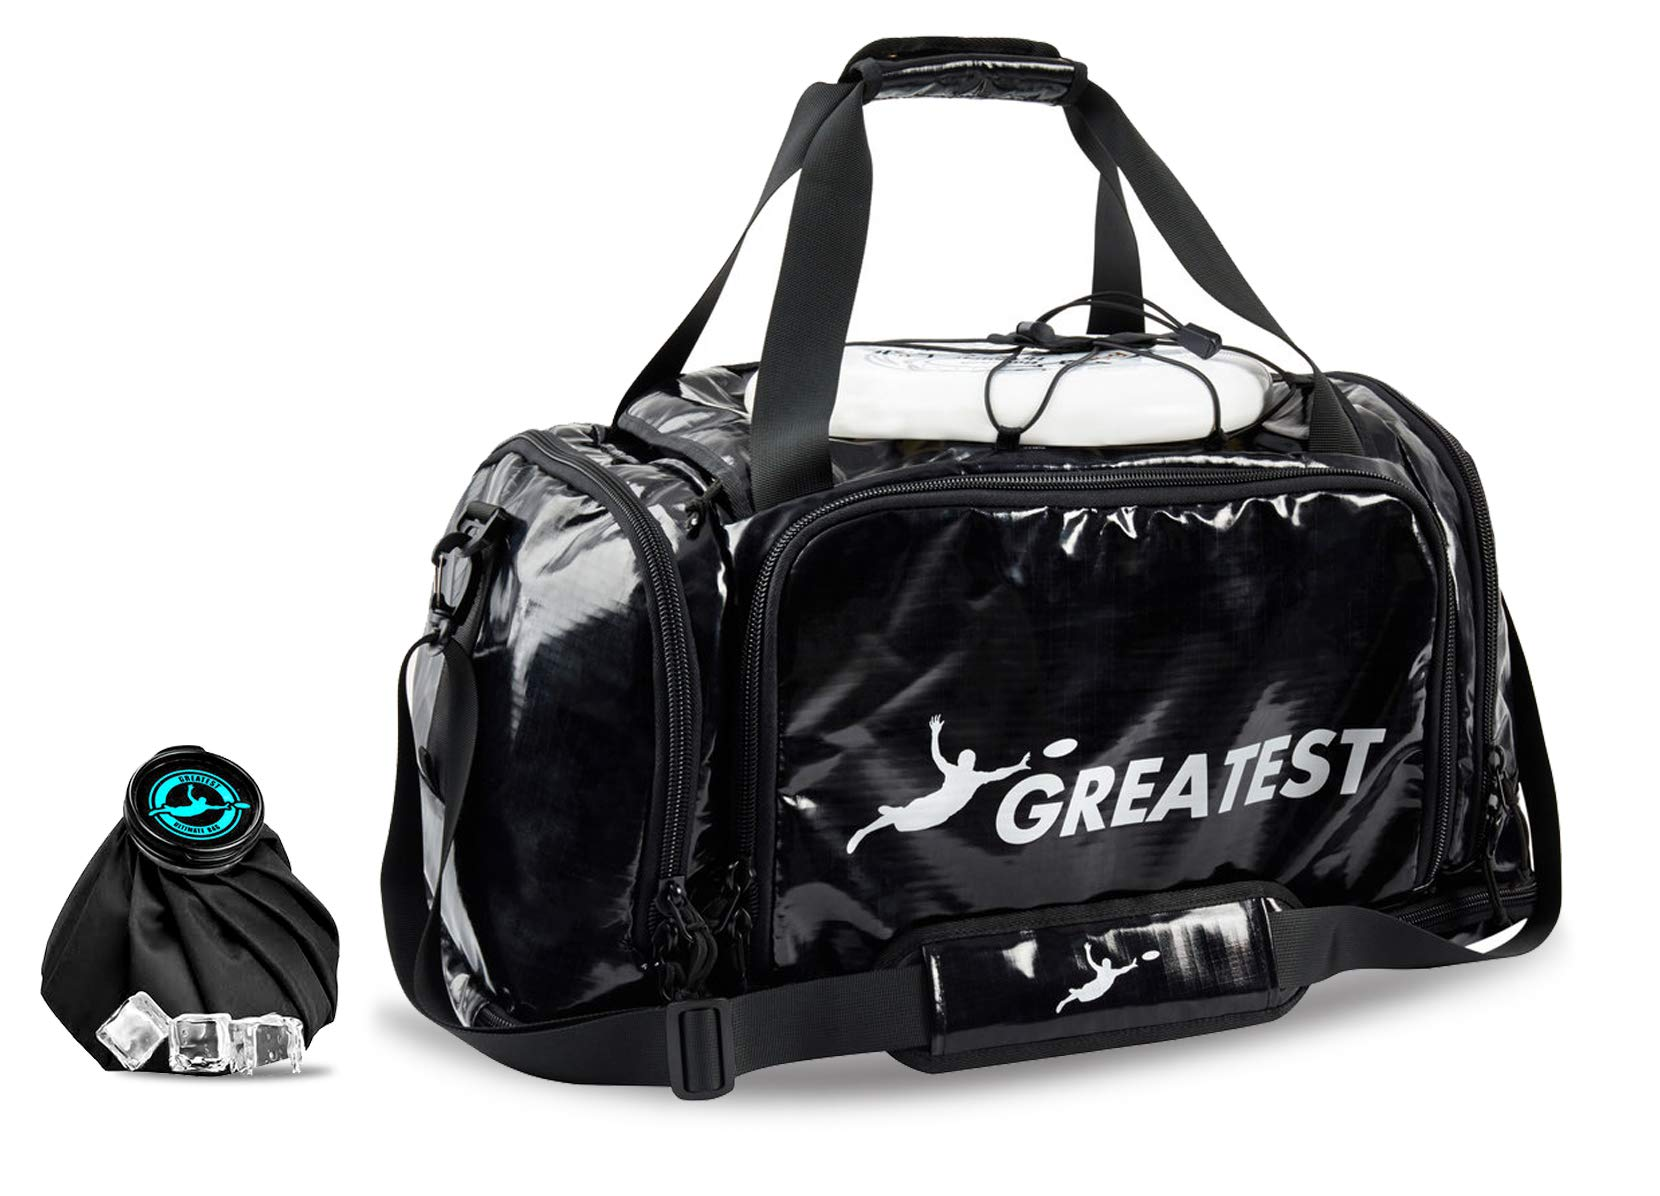 GREATEST Ultimate Bag 60 Liter - #1 World's Ultimate Frisbee Bag. Built in Insulated Cooler Compartment and Organization System. Also Perfect Sports Duffel Bag for Other Outdoor Sports (SILVER) by GREATEST